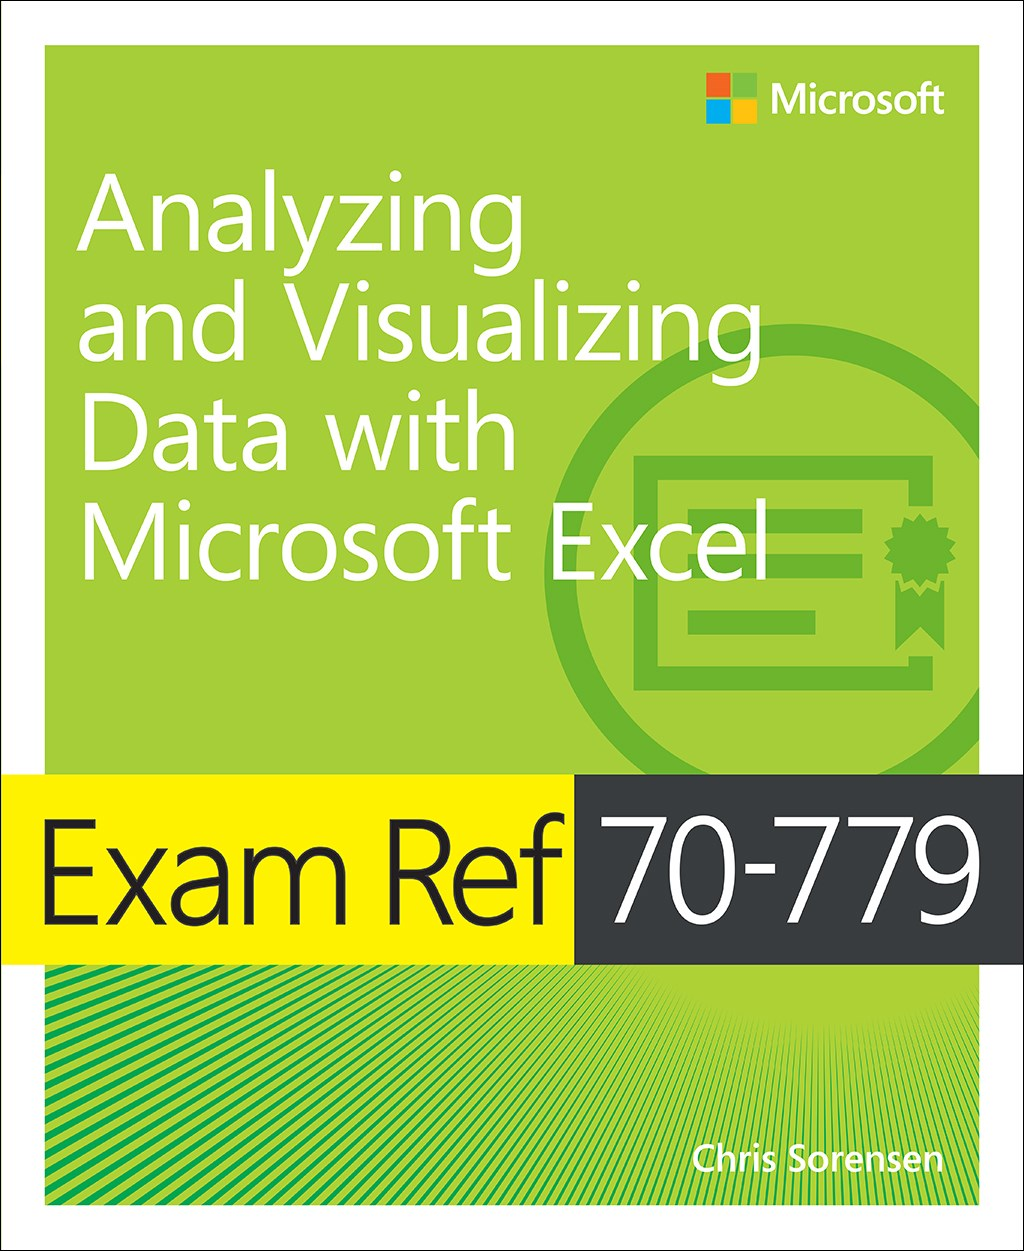 Exam Ref 70-779 Analyzing and Visualizing Data by Using Microsoft Excel